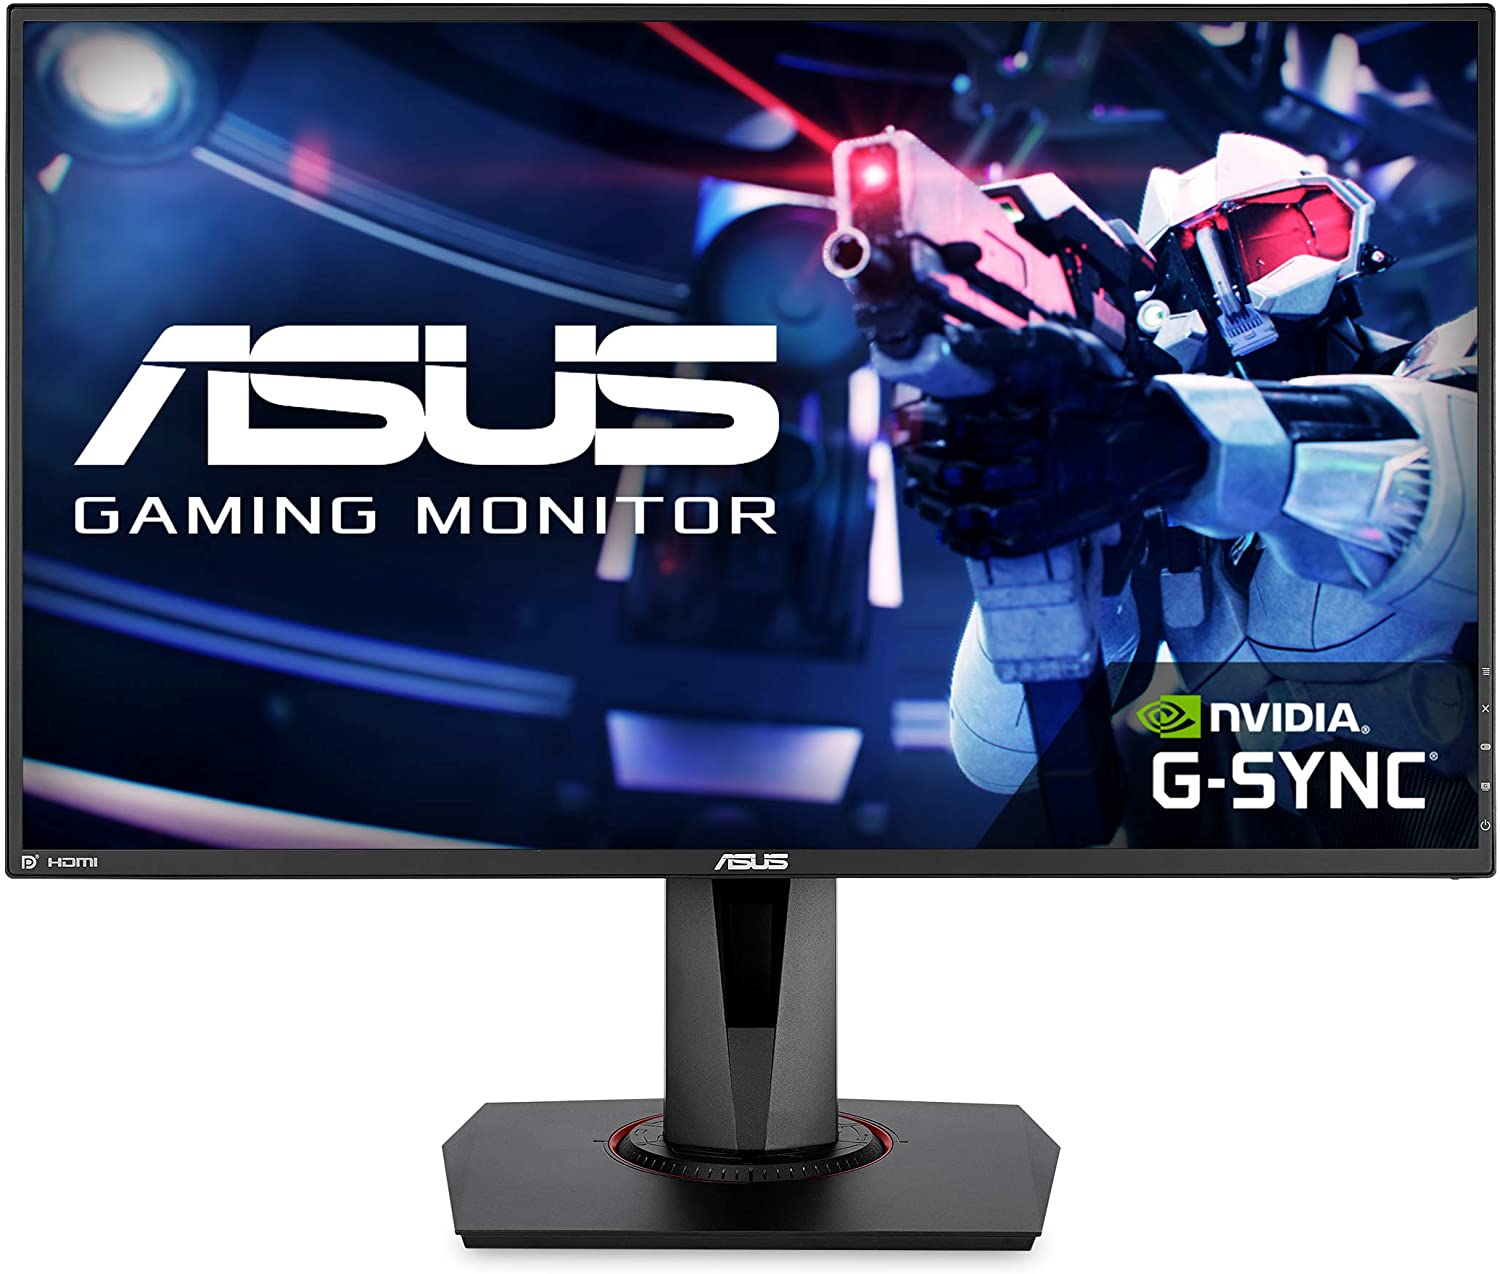 """ Gaming Monitor, 1080P Full HD, 165Hz 144Hz"